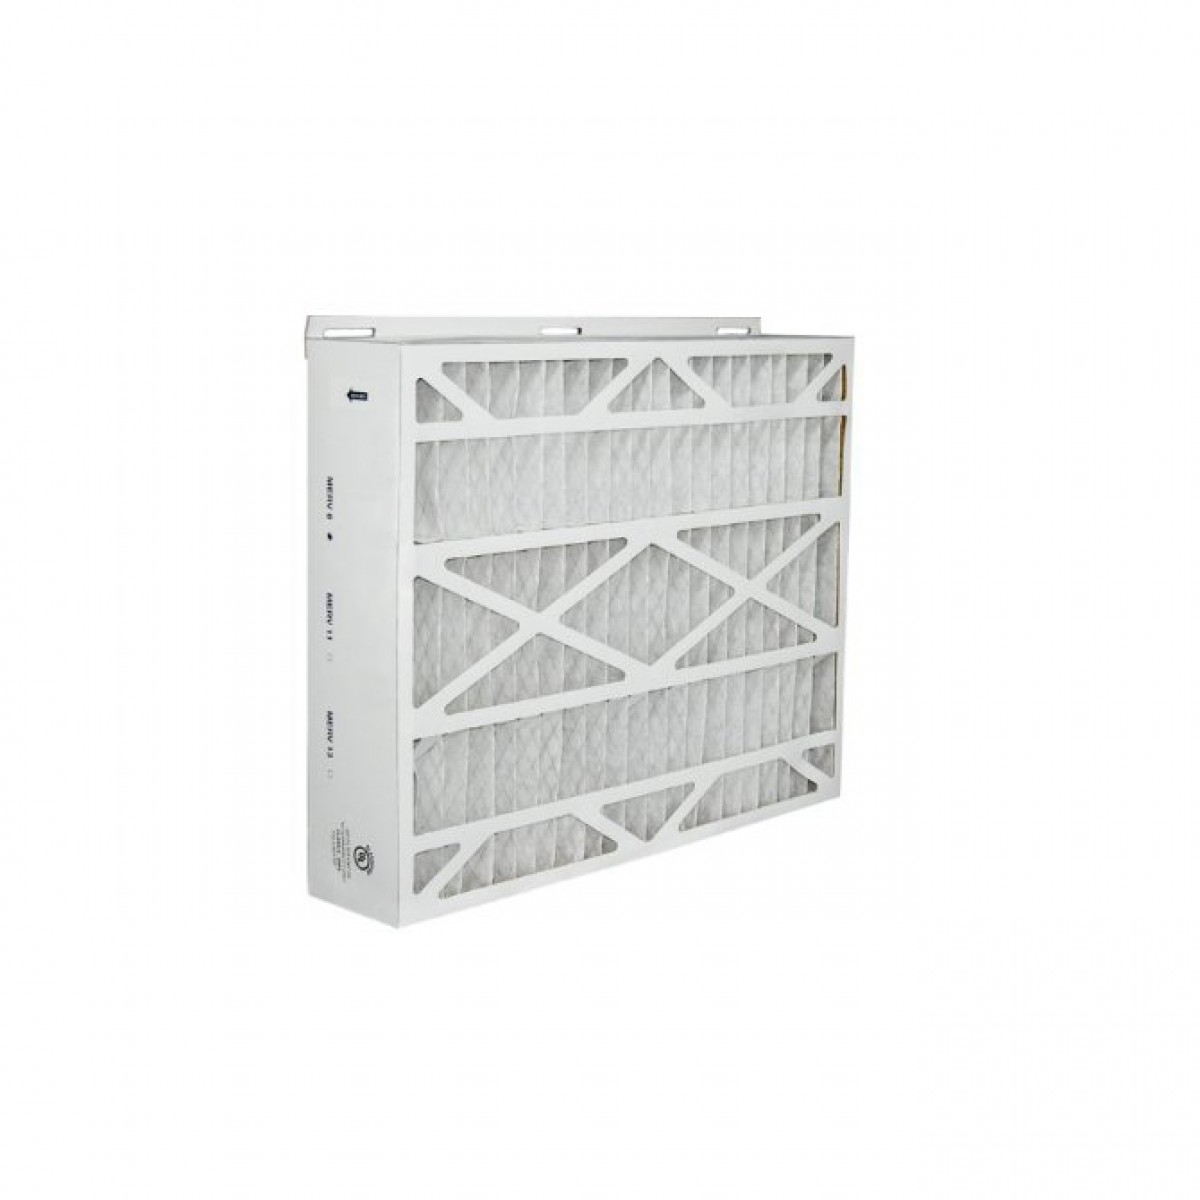 Flr06070 Trane Perfect Fit Air Filter Replacement